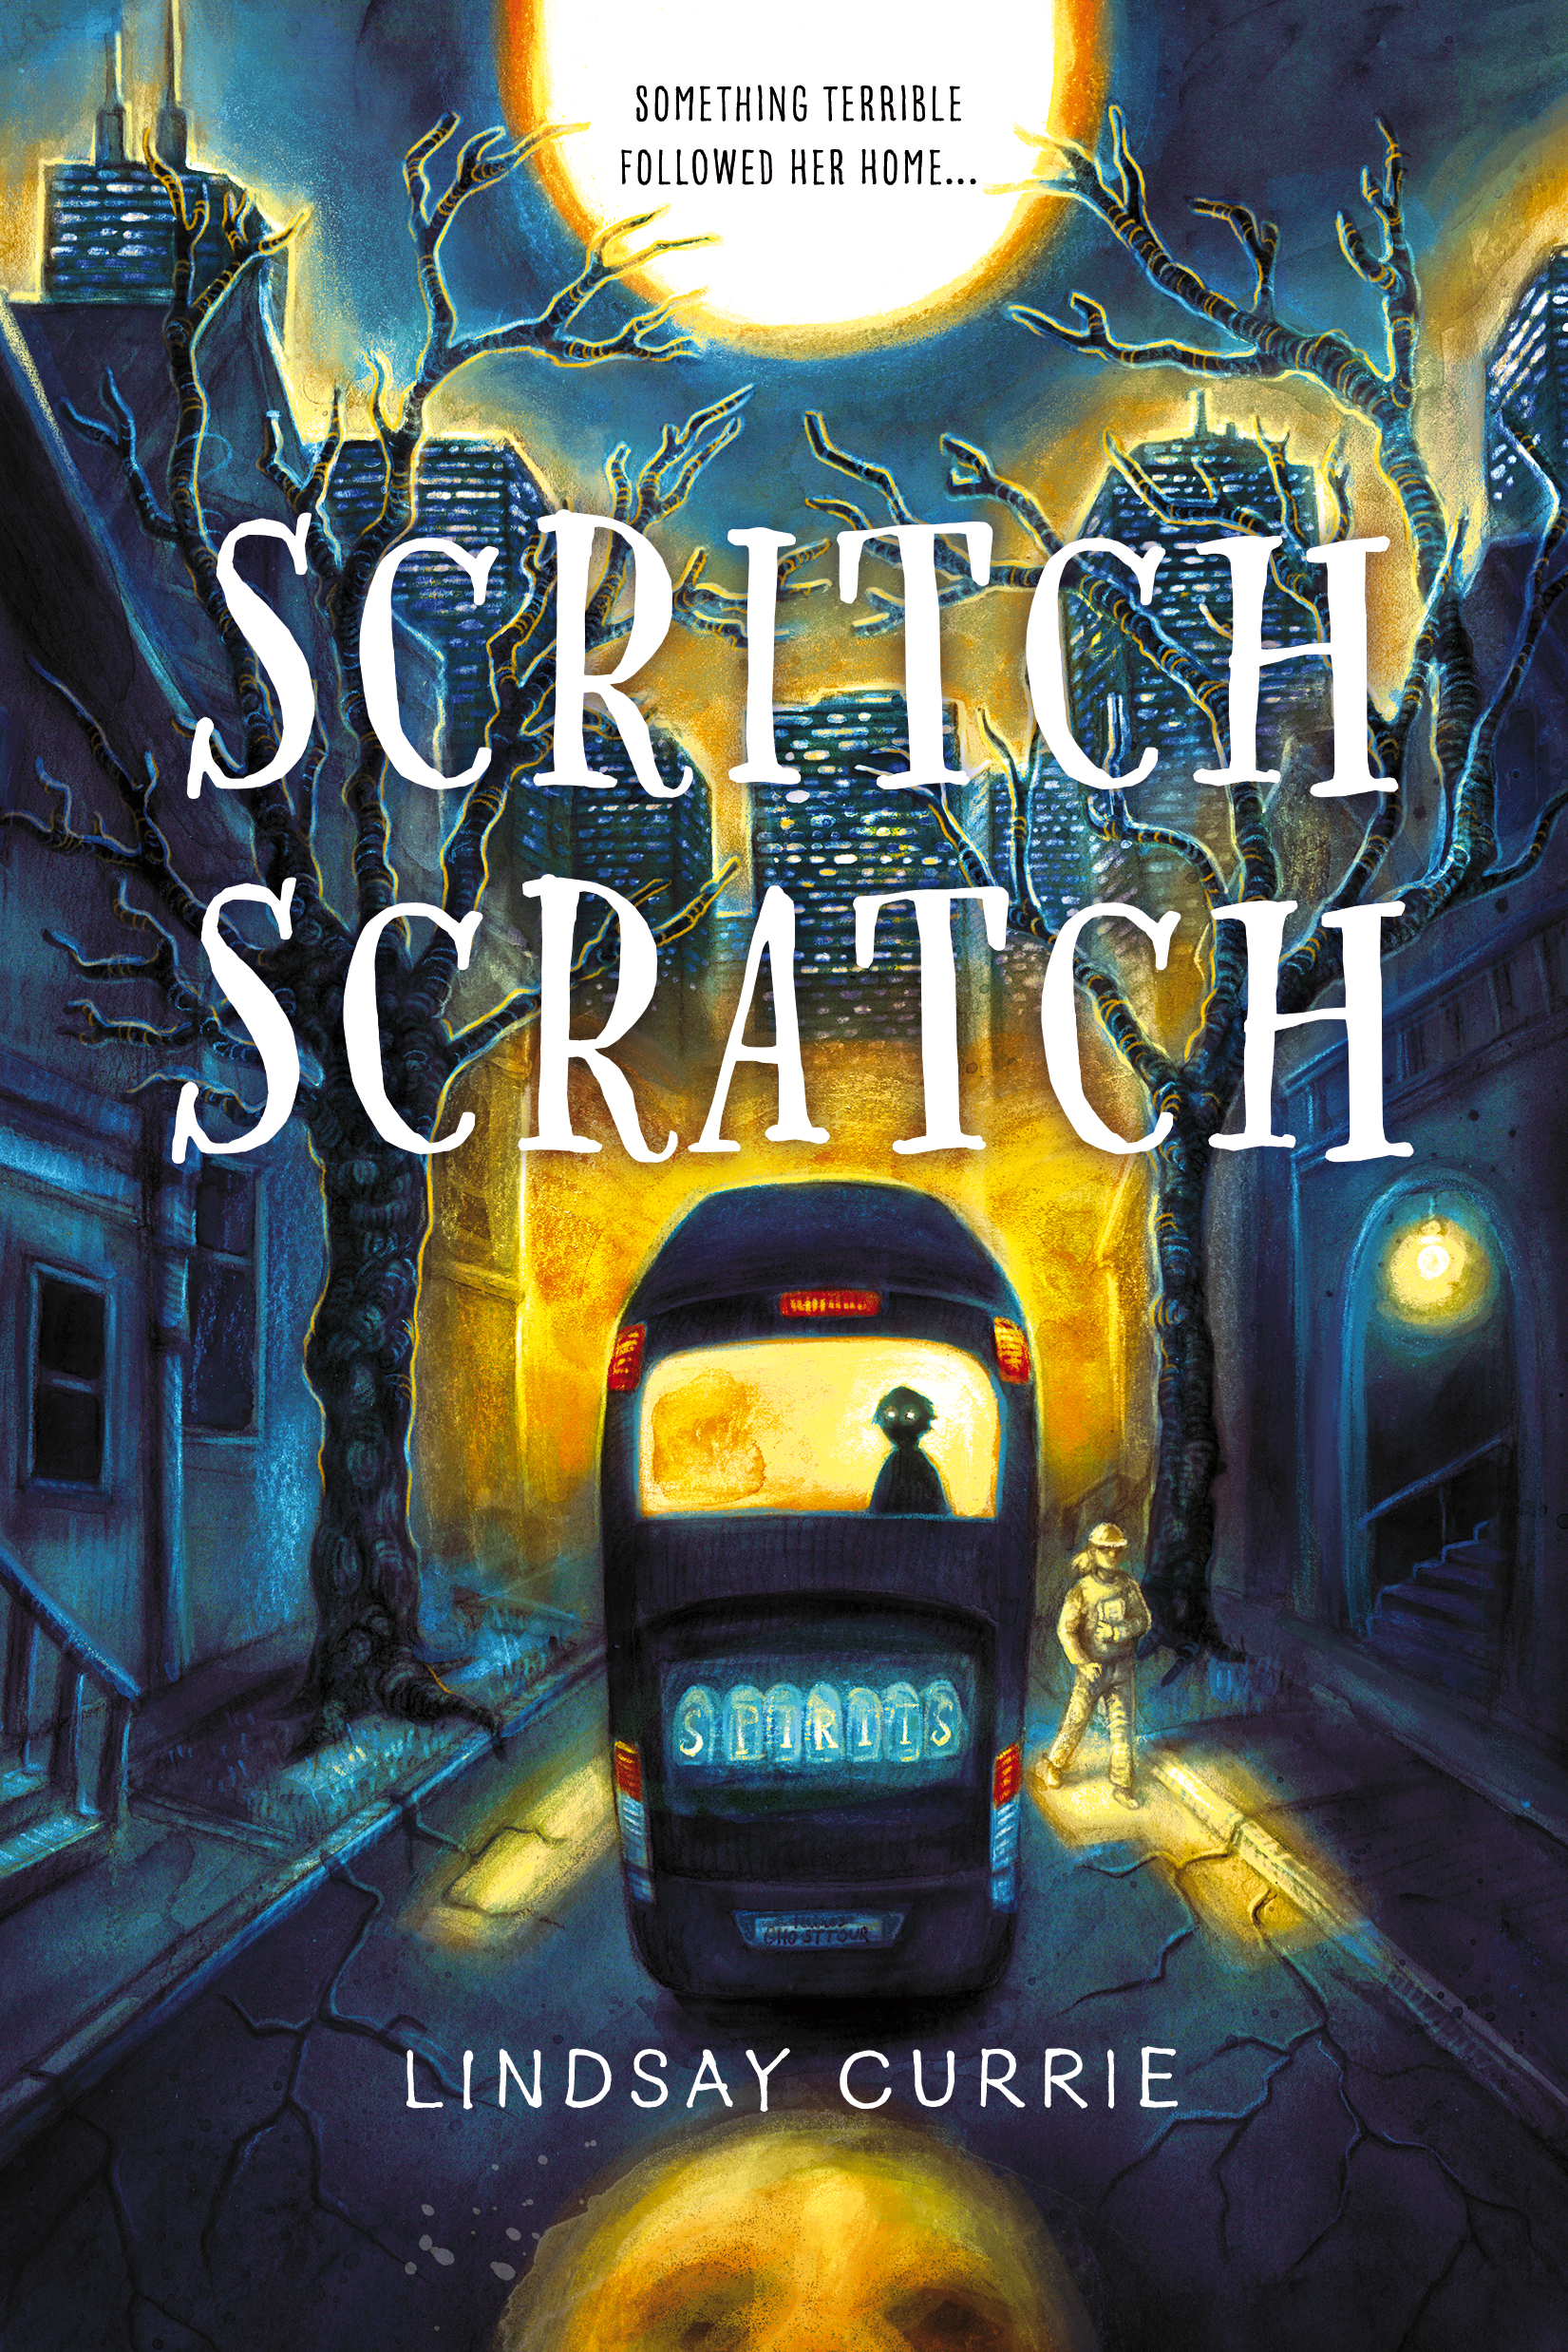 Scritch Scratch by Lindsay Currie